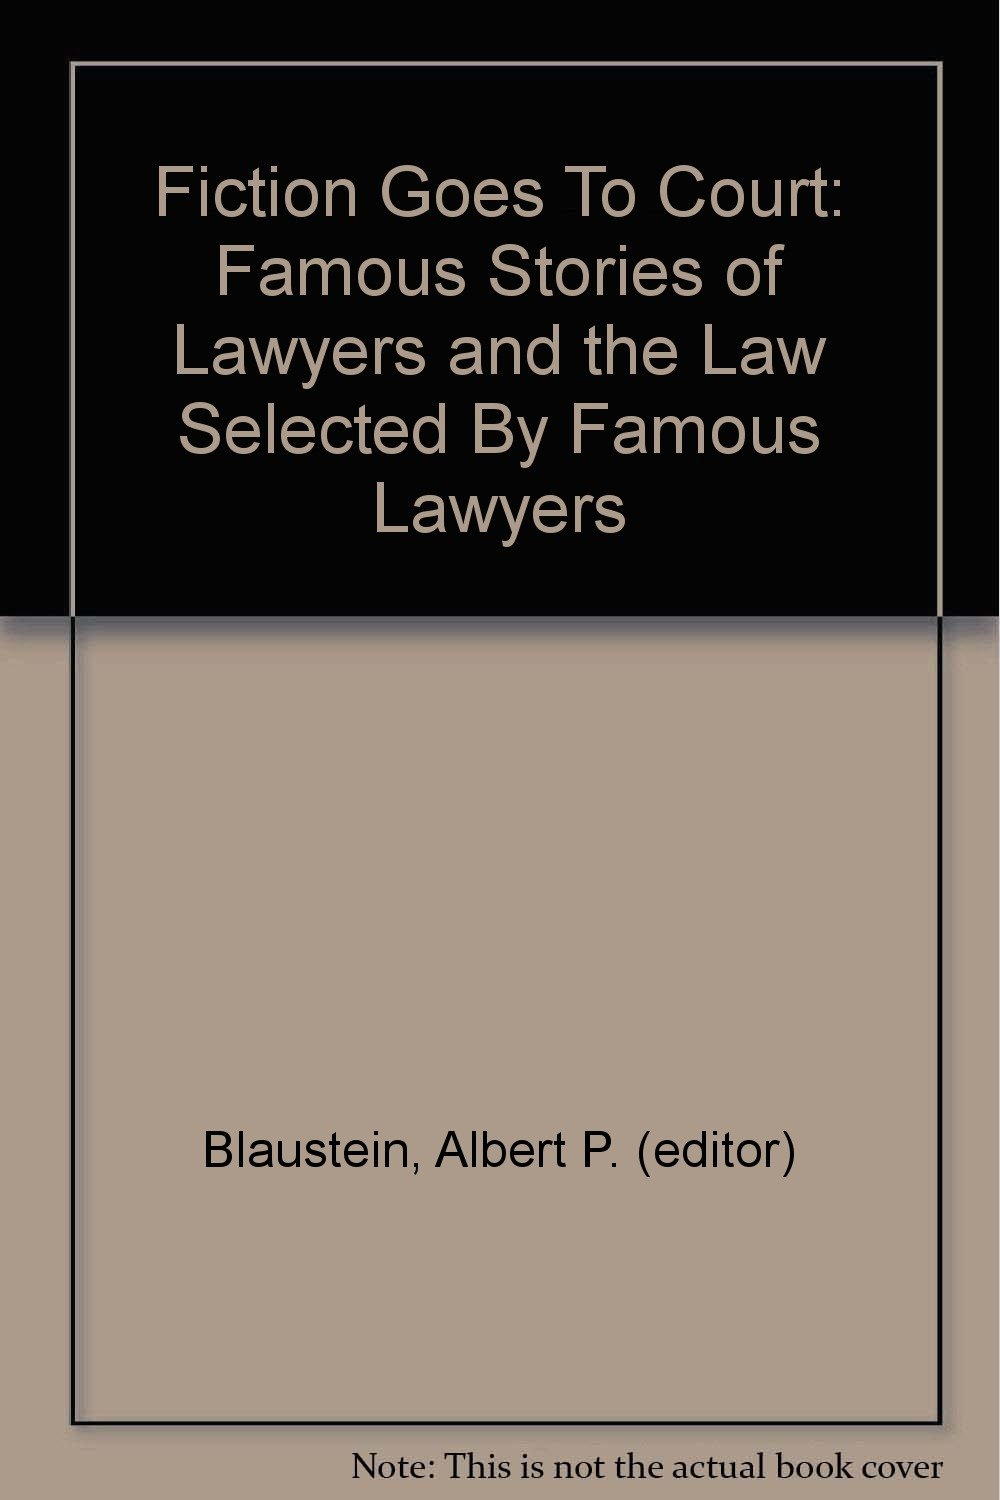 Fiction Goes To Court: Famous Stories of Lawyers and the Law